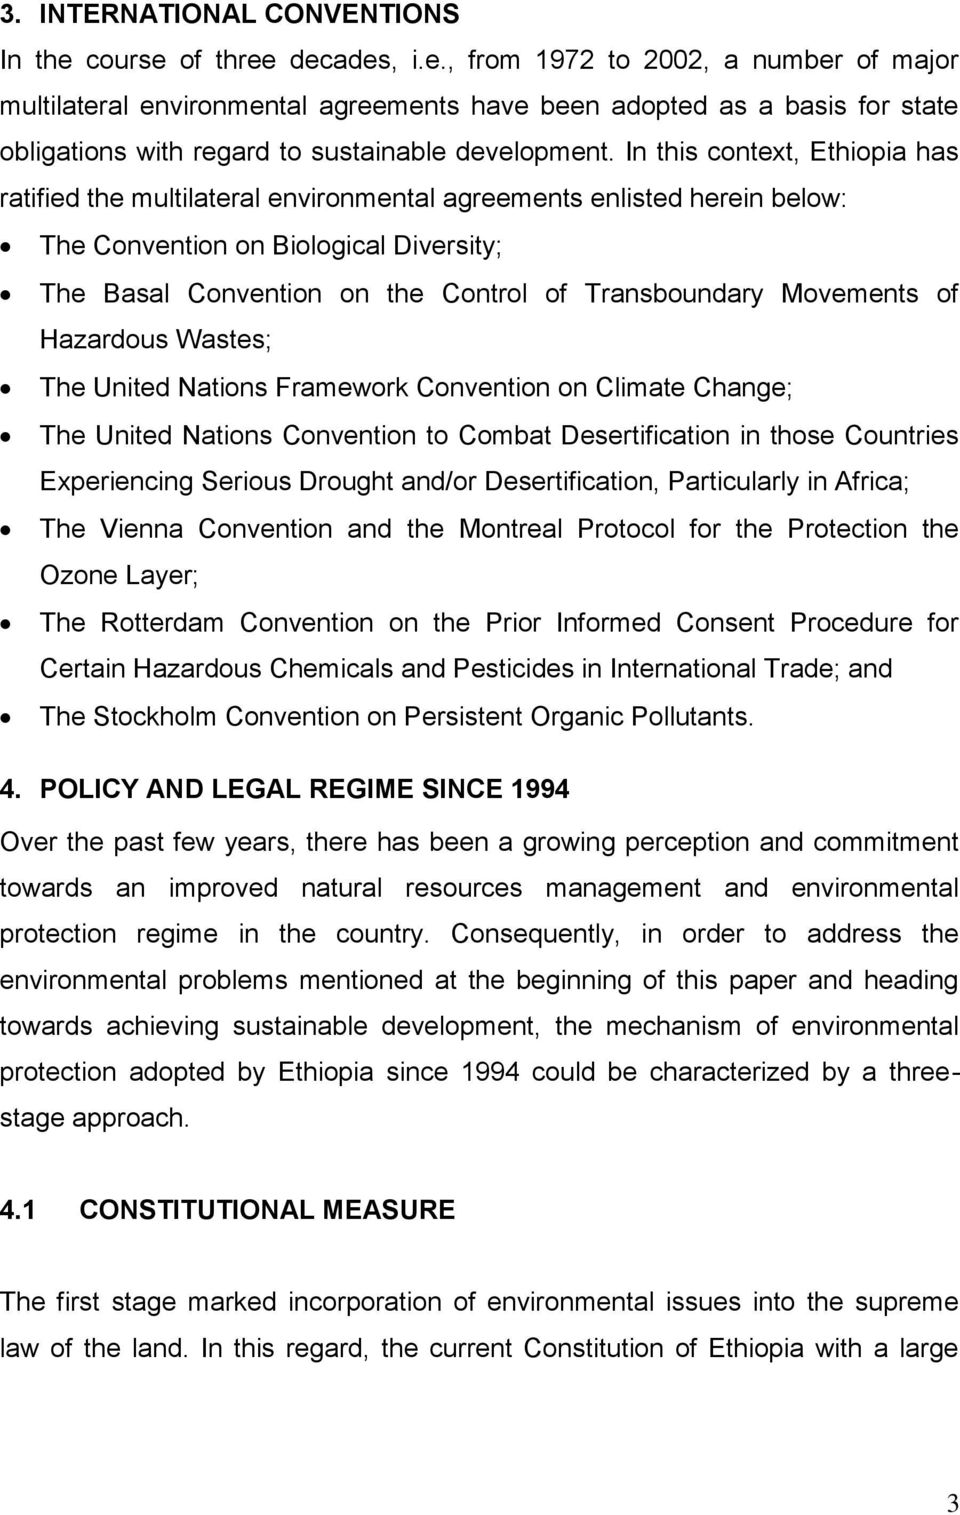 In this context, Ethiopia has ratified the multilateral environmental agreements enlisted herein below: The Convention on Biological Diversity; The Basal Convention on the Control of Transboundary